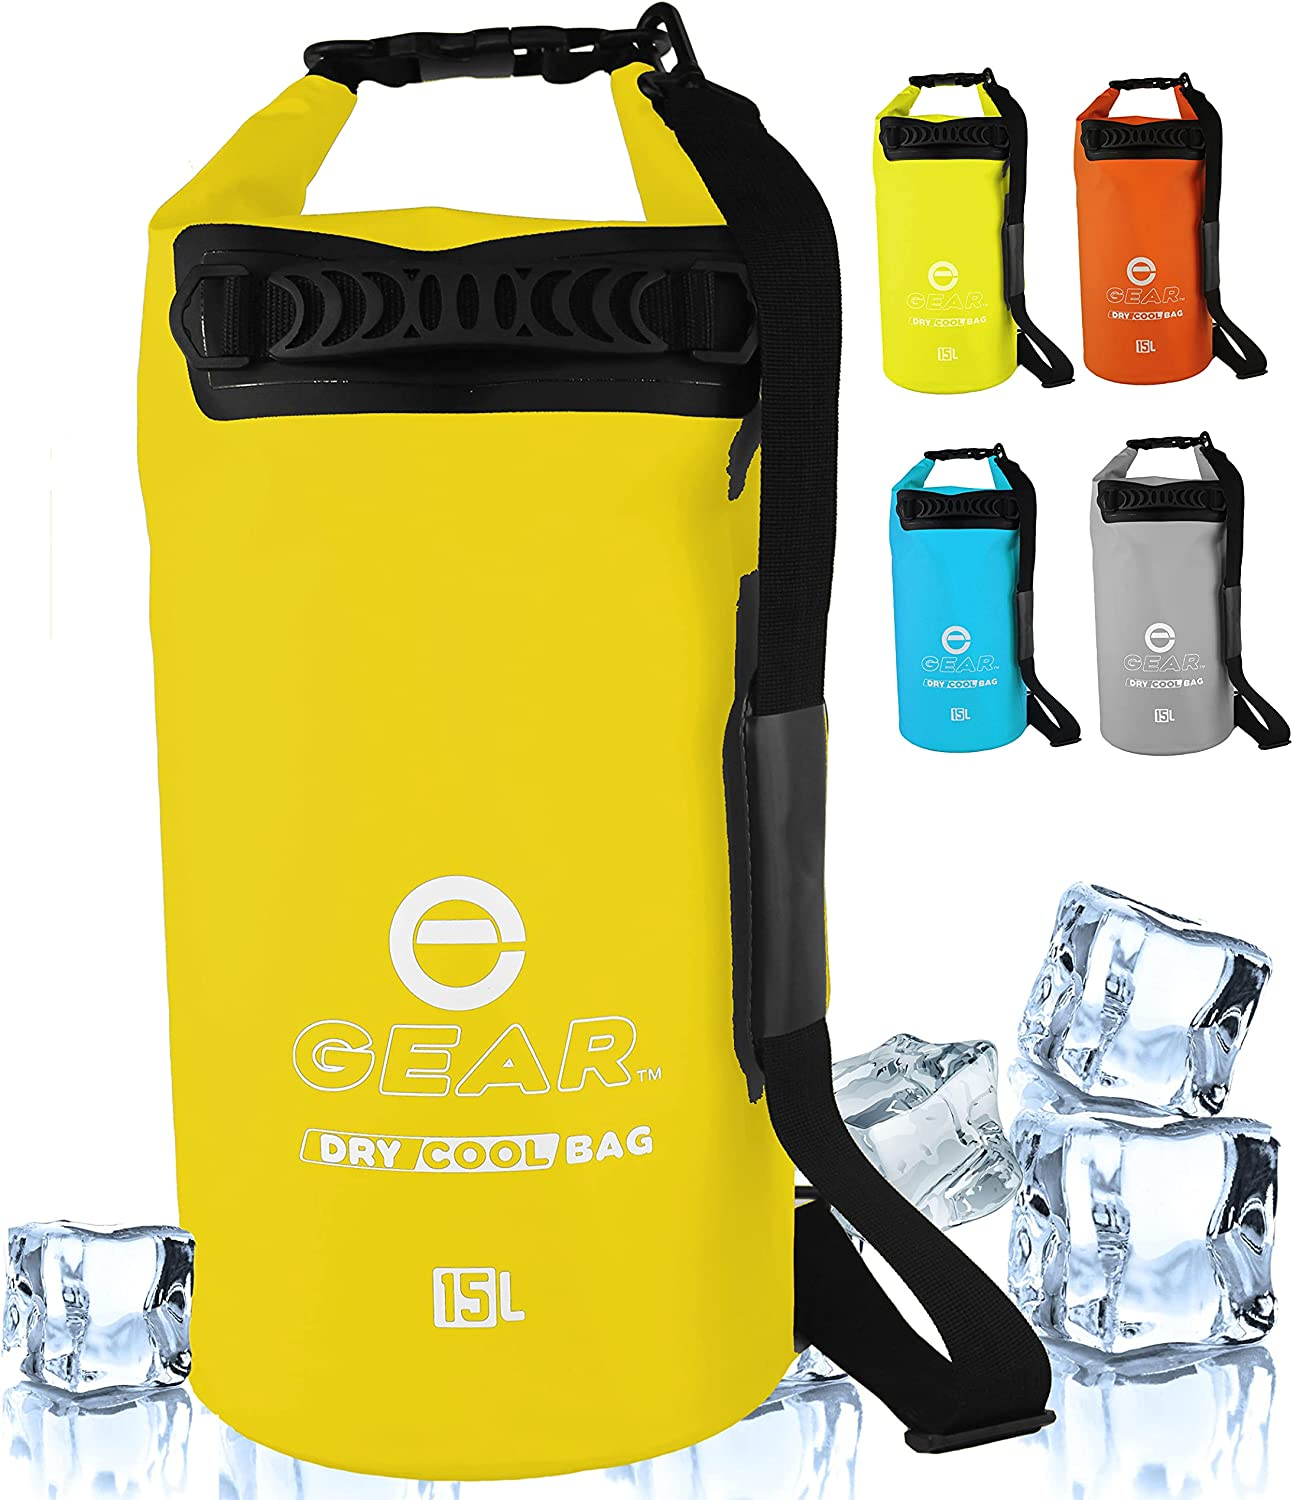 Enthusiast Gear Insulated Dry Bag Cooler 25L 70% OFF Outlet – 15L 10L Elegant Roll